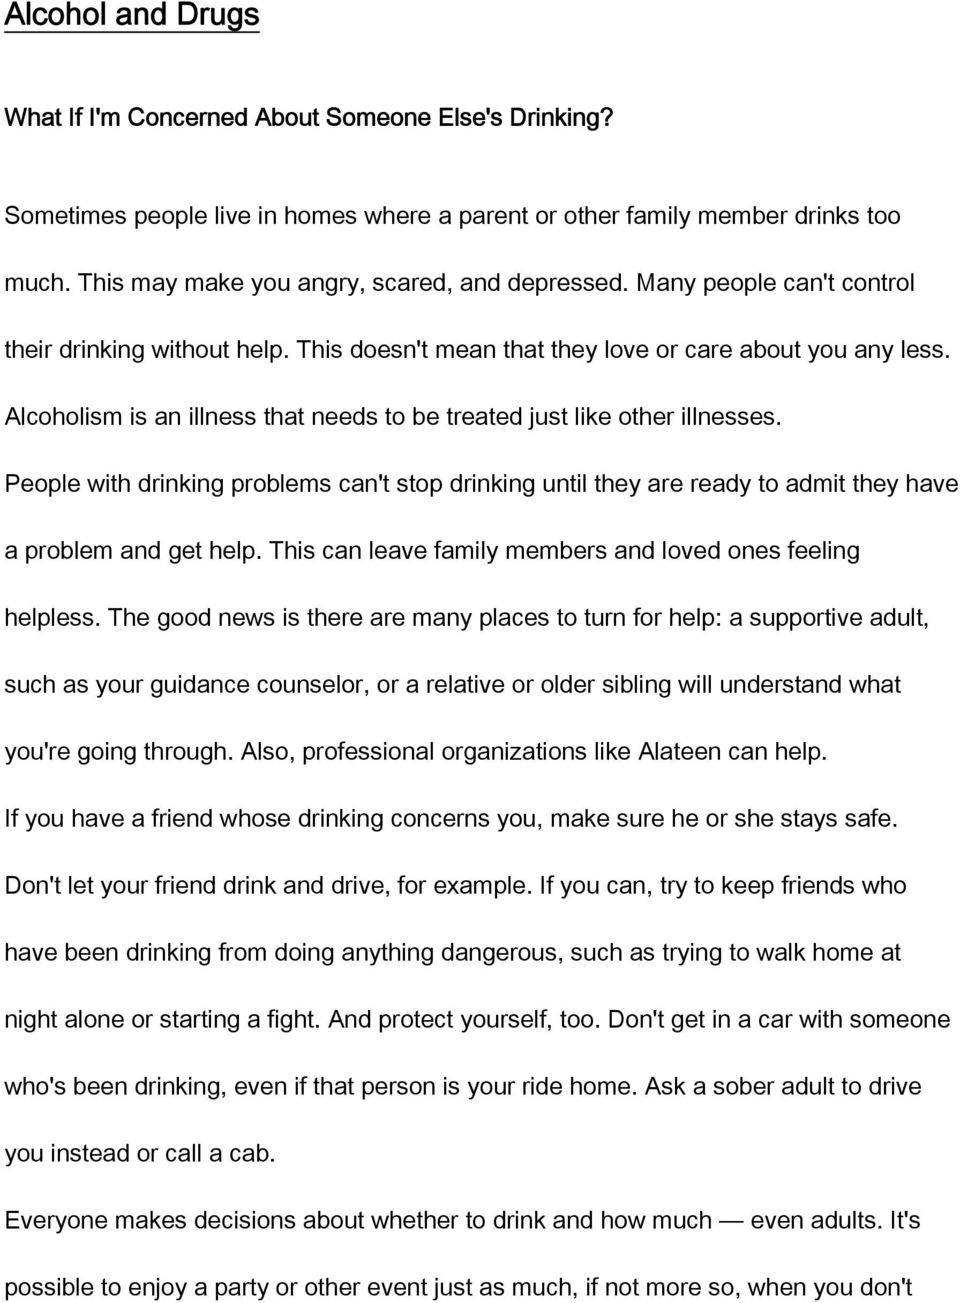 Alcoholism is an illness that needs to be treated just like other illnesses. People with drinking problems can't stop drinking until they are ready to admit they have a problem and get help.